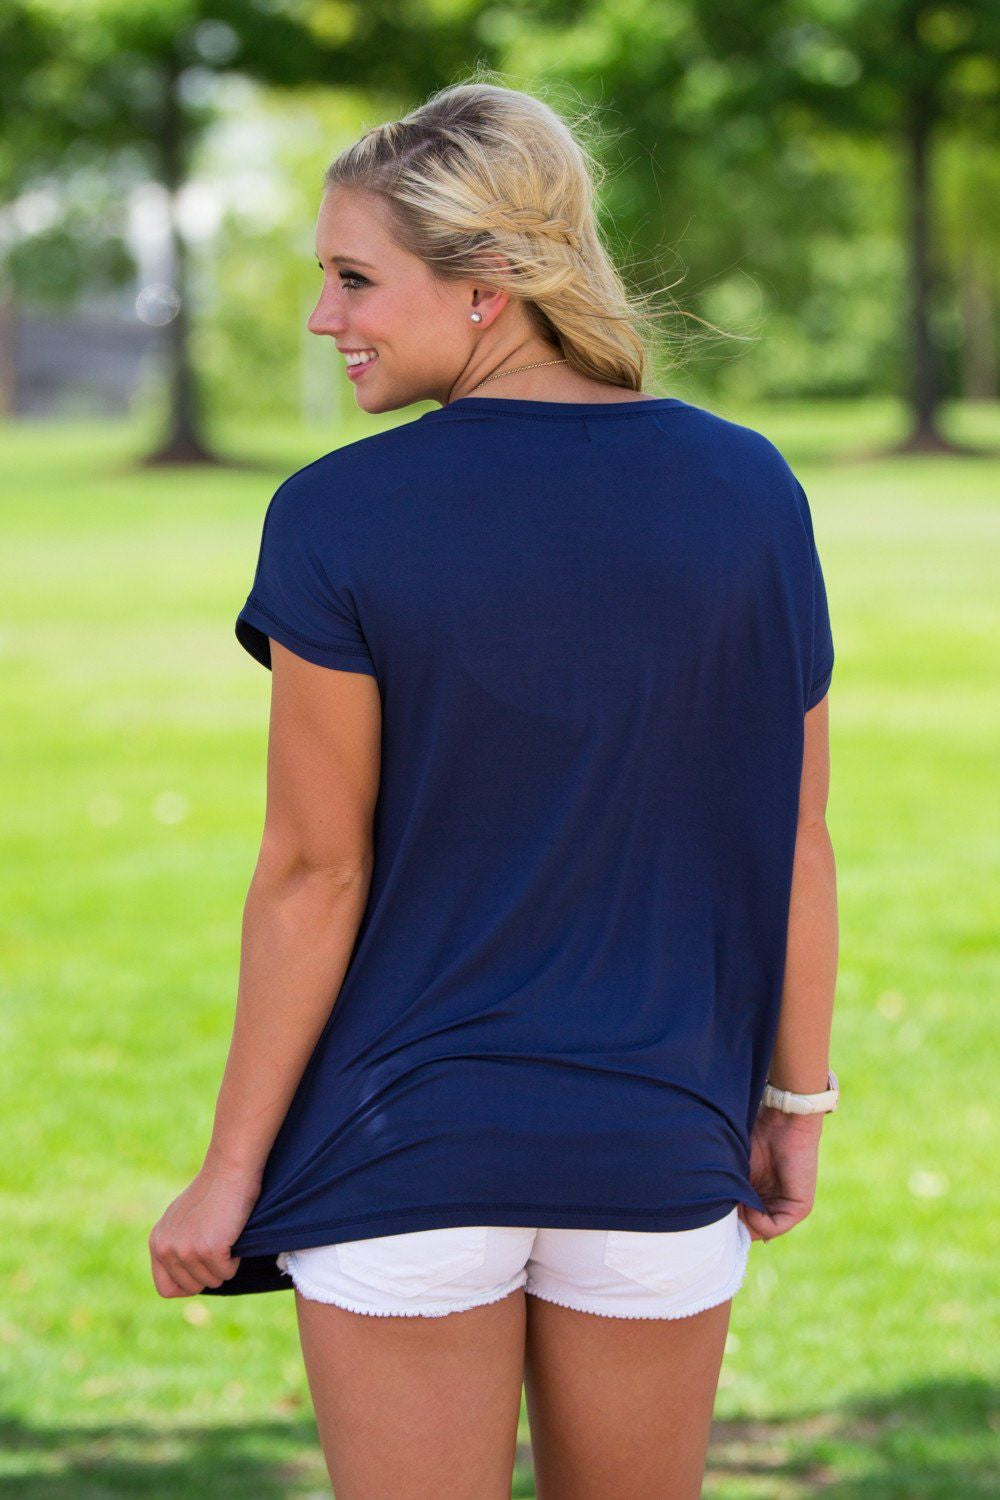 Short Sleeve Rolled Sleeve Piko Top - Navy - Piko Clothing - 2